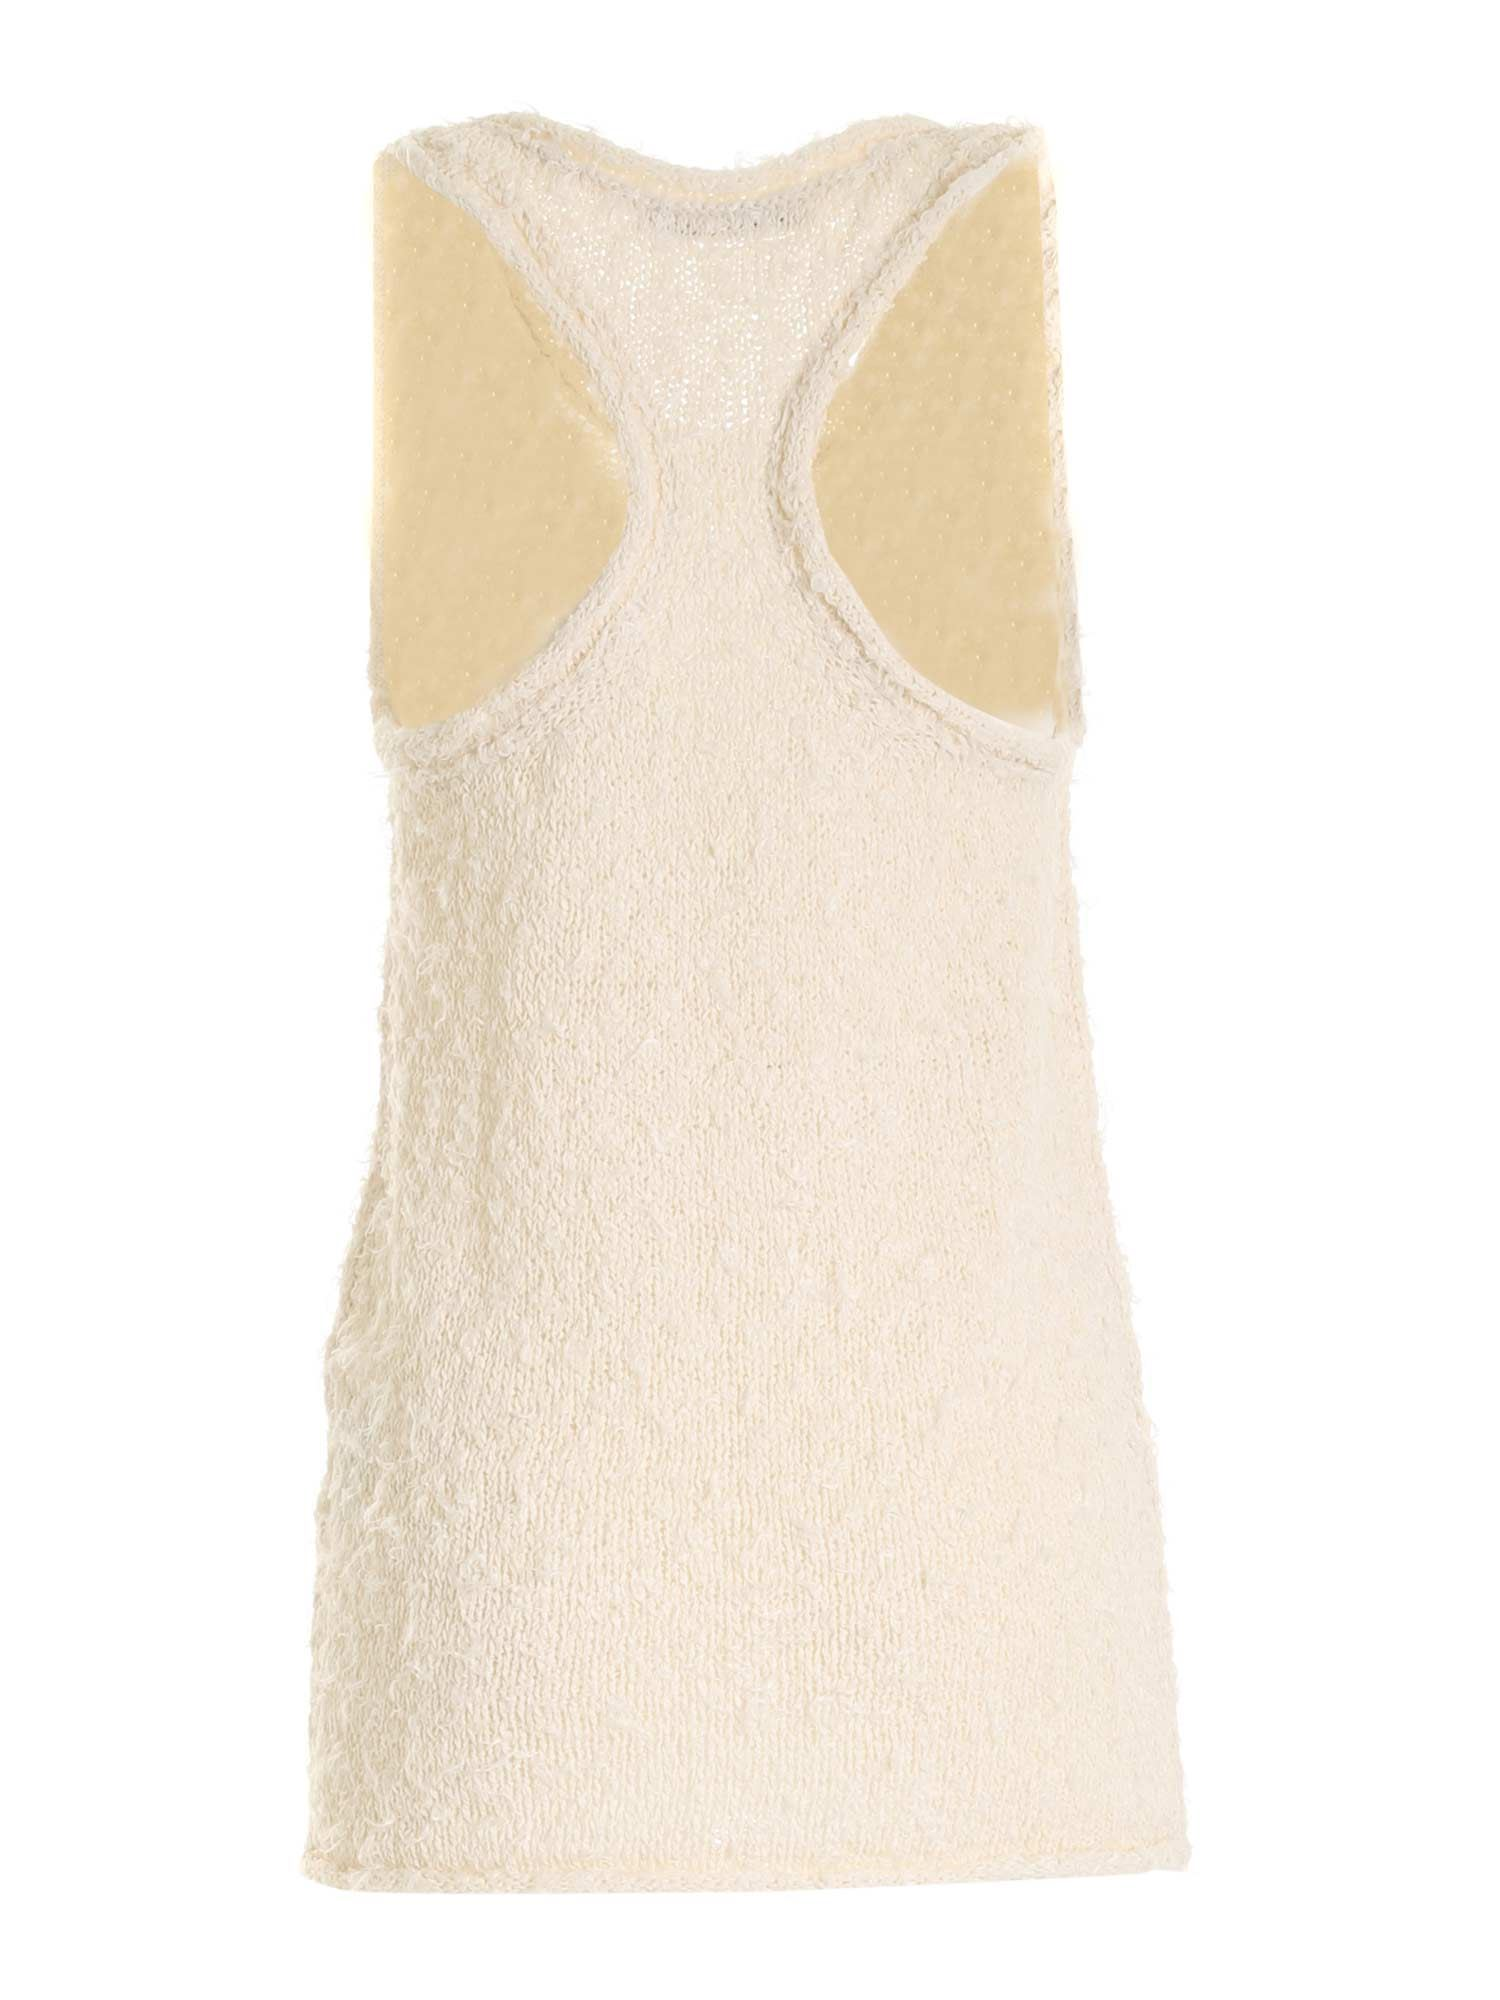 ACNE STUDIOS Cottons KNITTED TOP IN CREAM COLOR